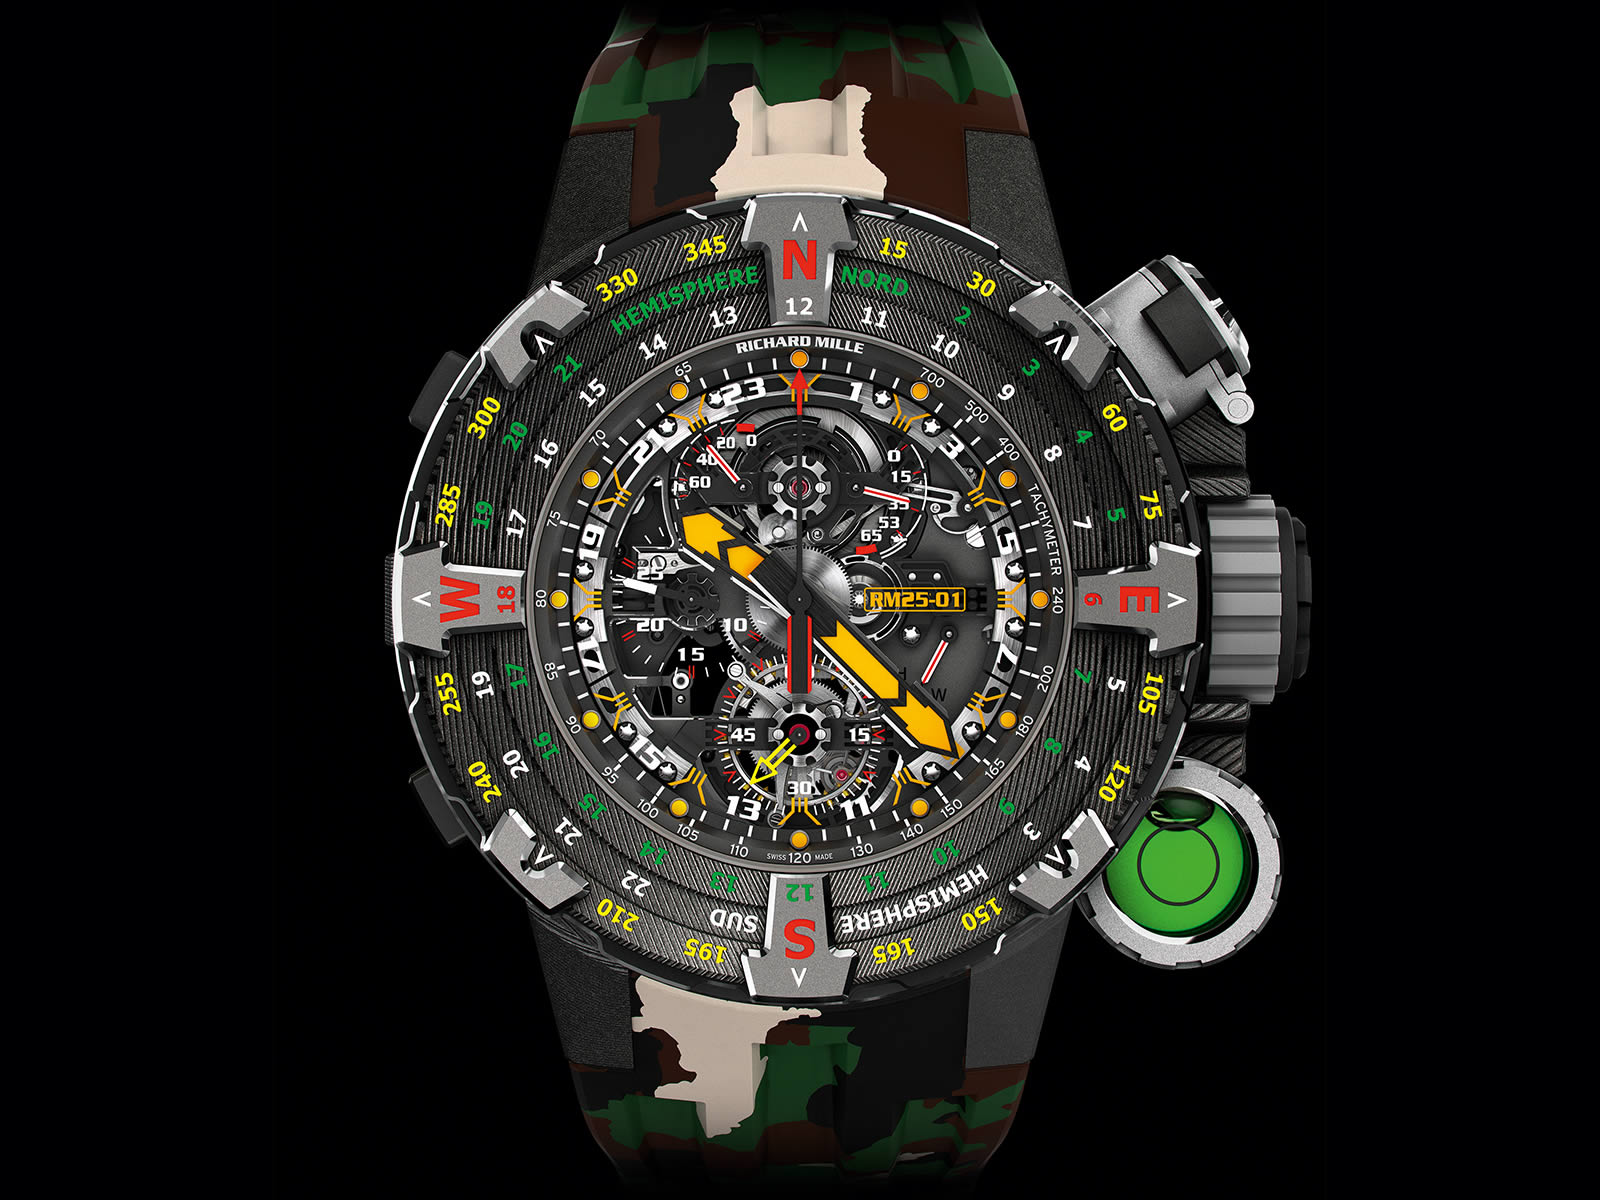 richard-mille-rm-25-01-tourbillon-adventure-sylvester-stallone-3-.jpg